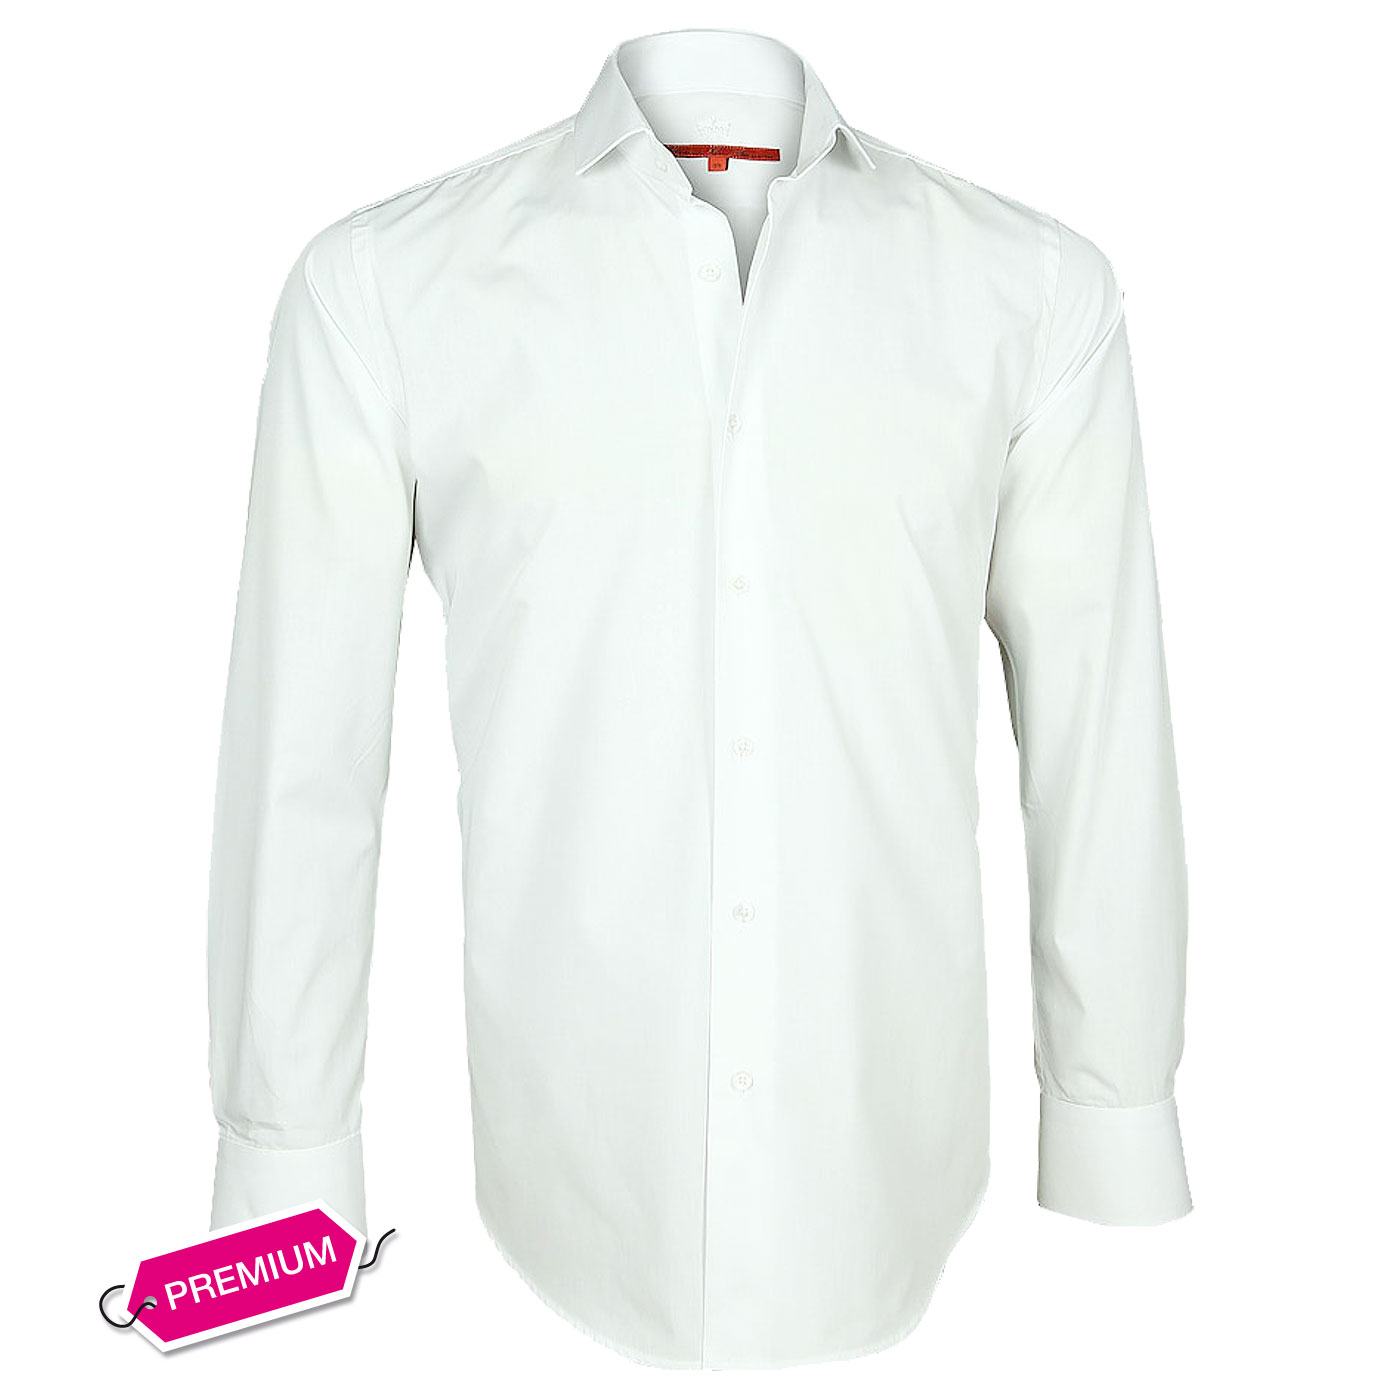 Men's Shirts Premium Indispensable and Timeless